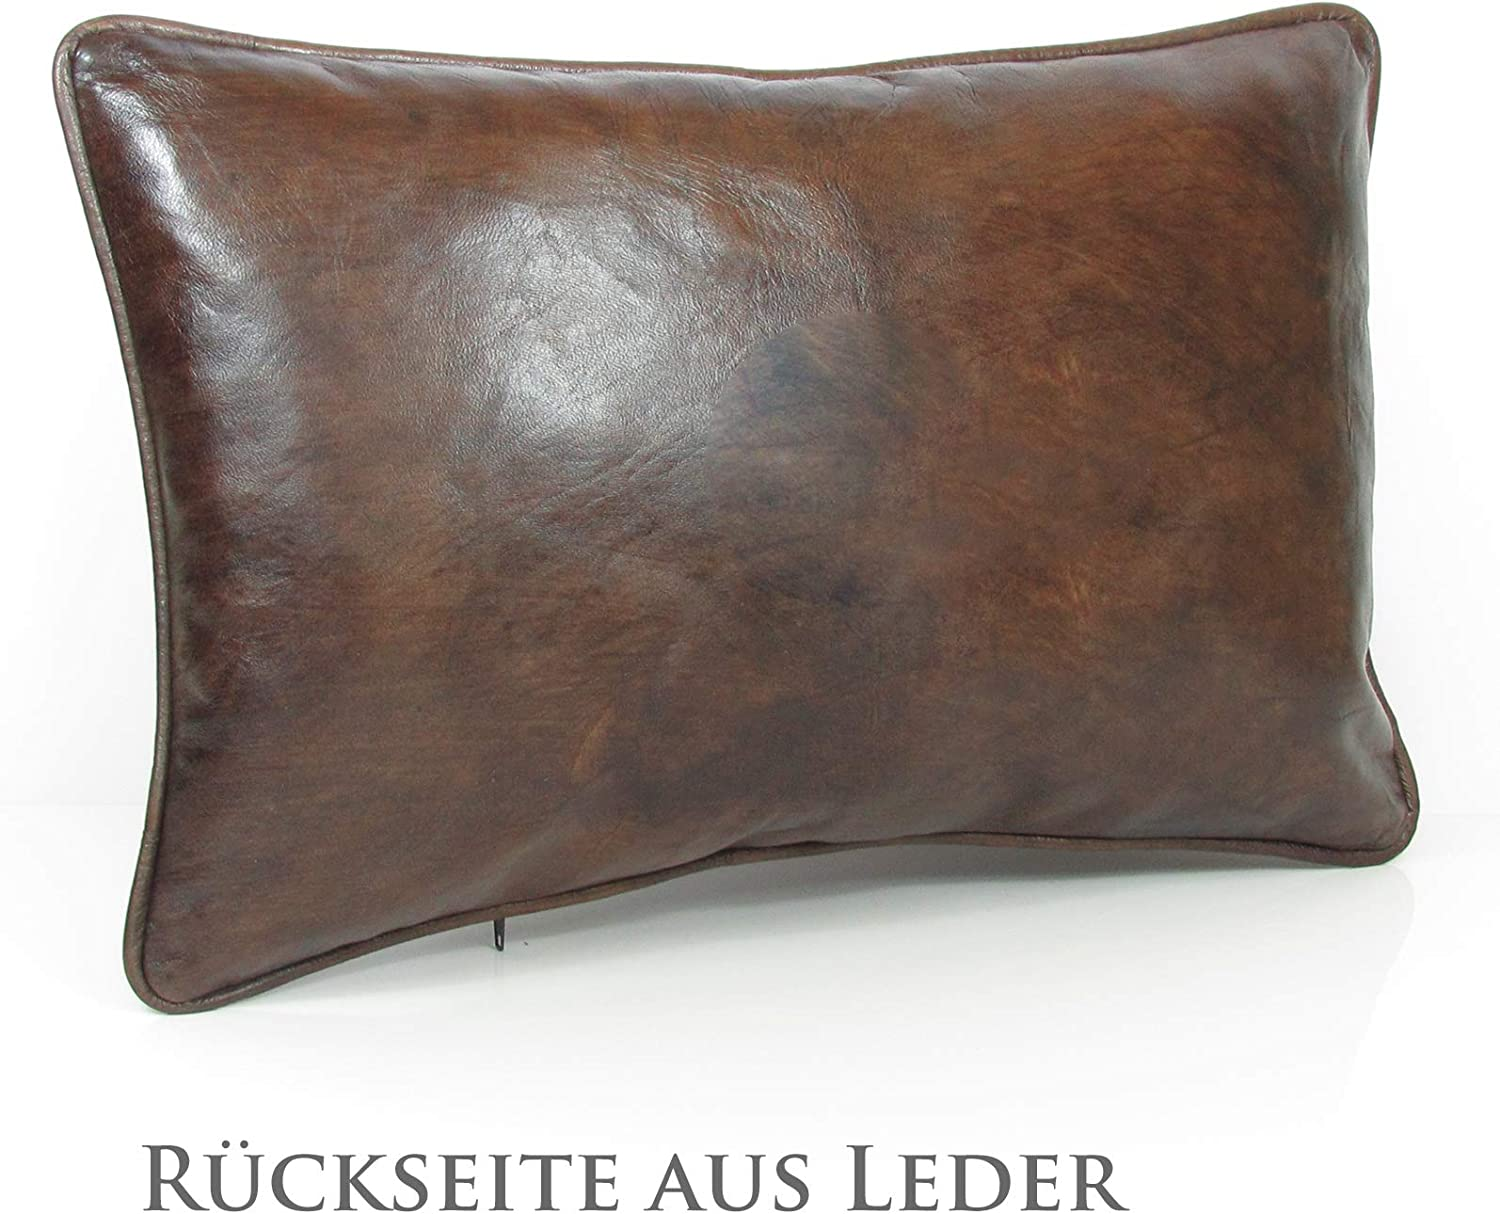 Almadih Real Lambskin Leather Brown Xl Cm Vintage Cushion 100 Traditional Handmade Real Leather Sofa Decorative Cushion Oriental Lounge Pillow With Filling Cushion 50x35 Brown Amazon Co Uk Kitchen Home